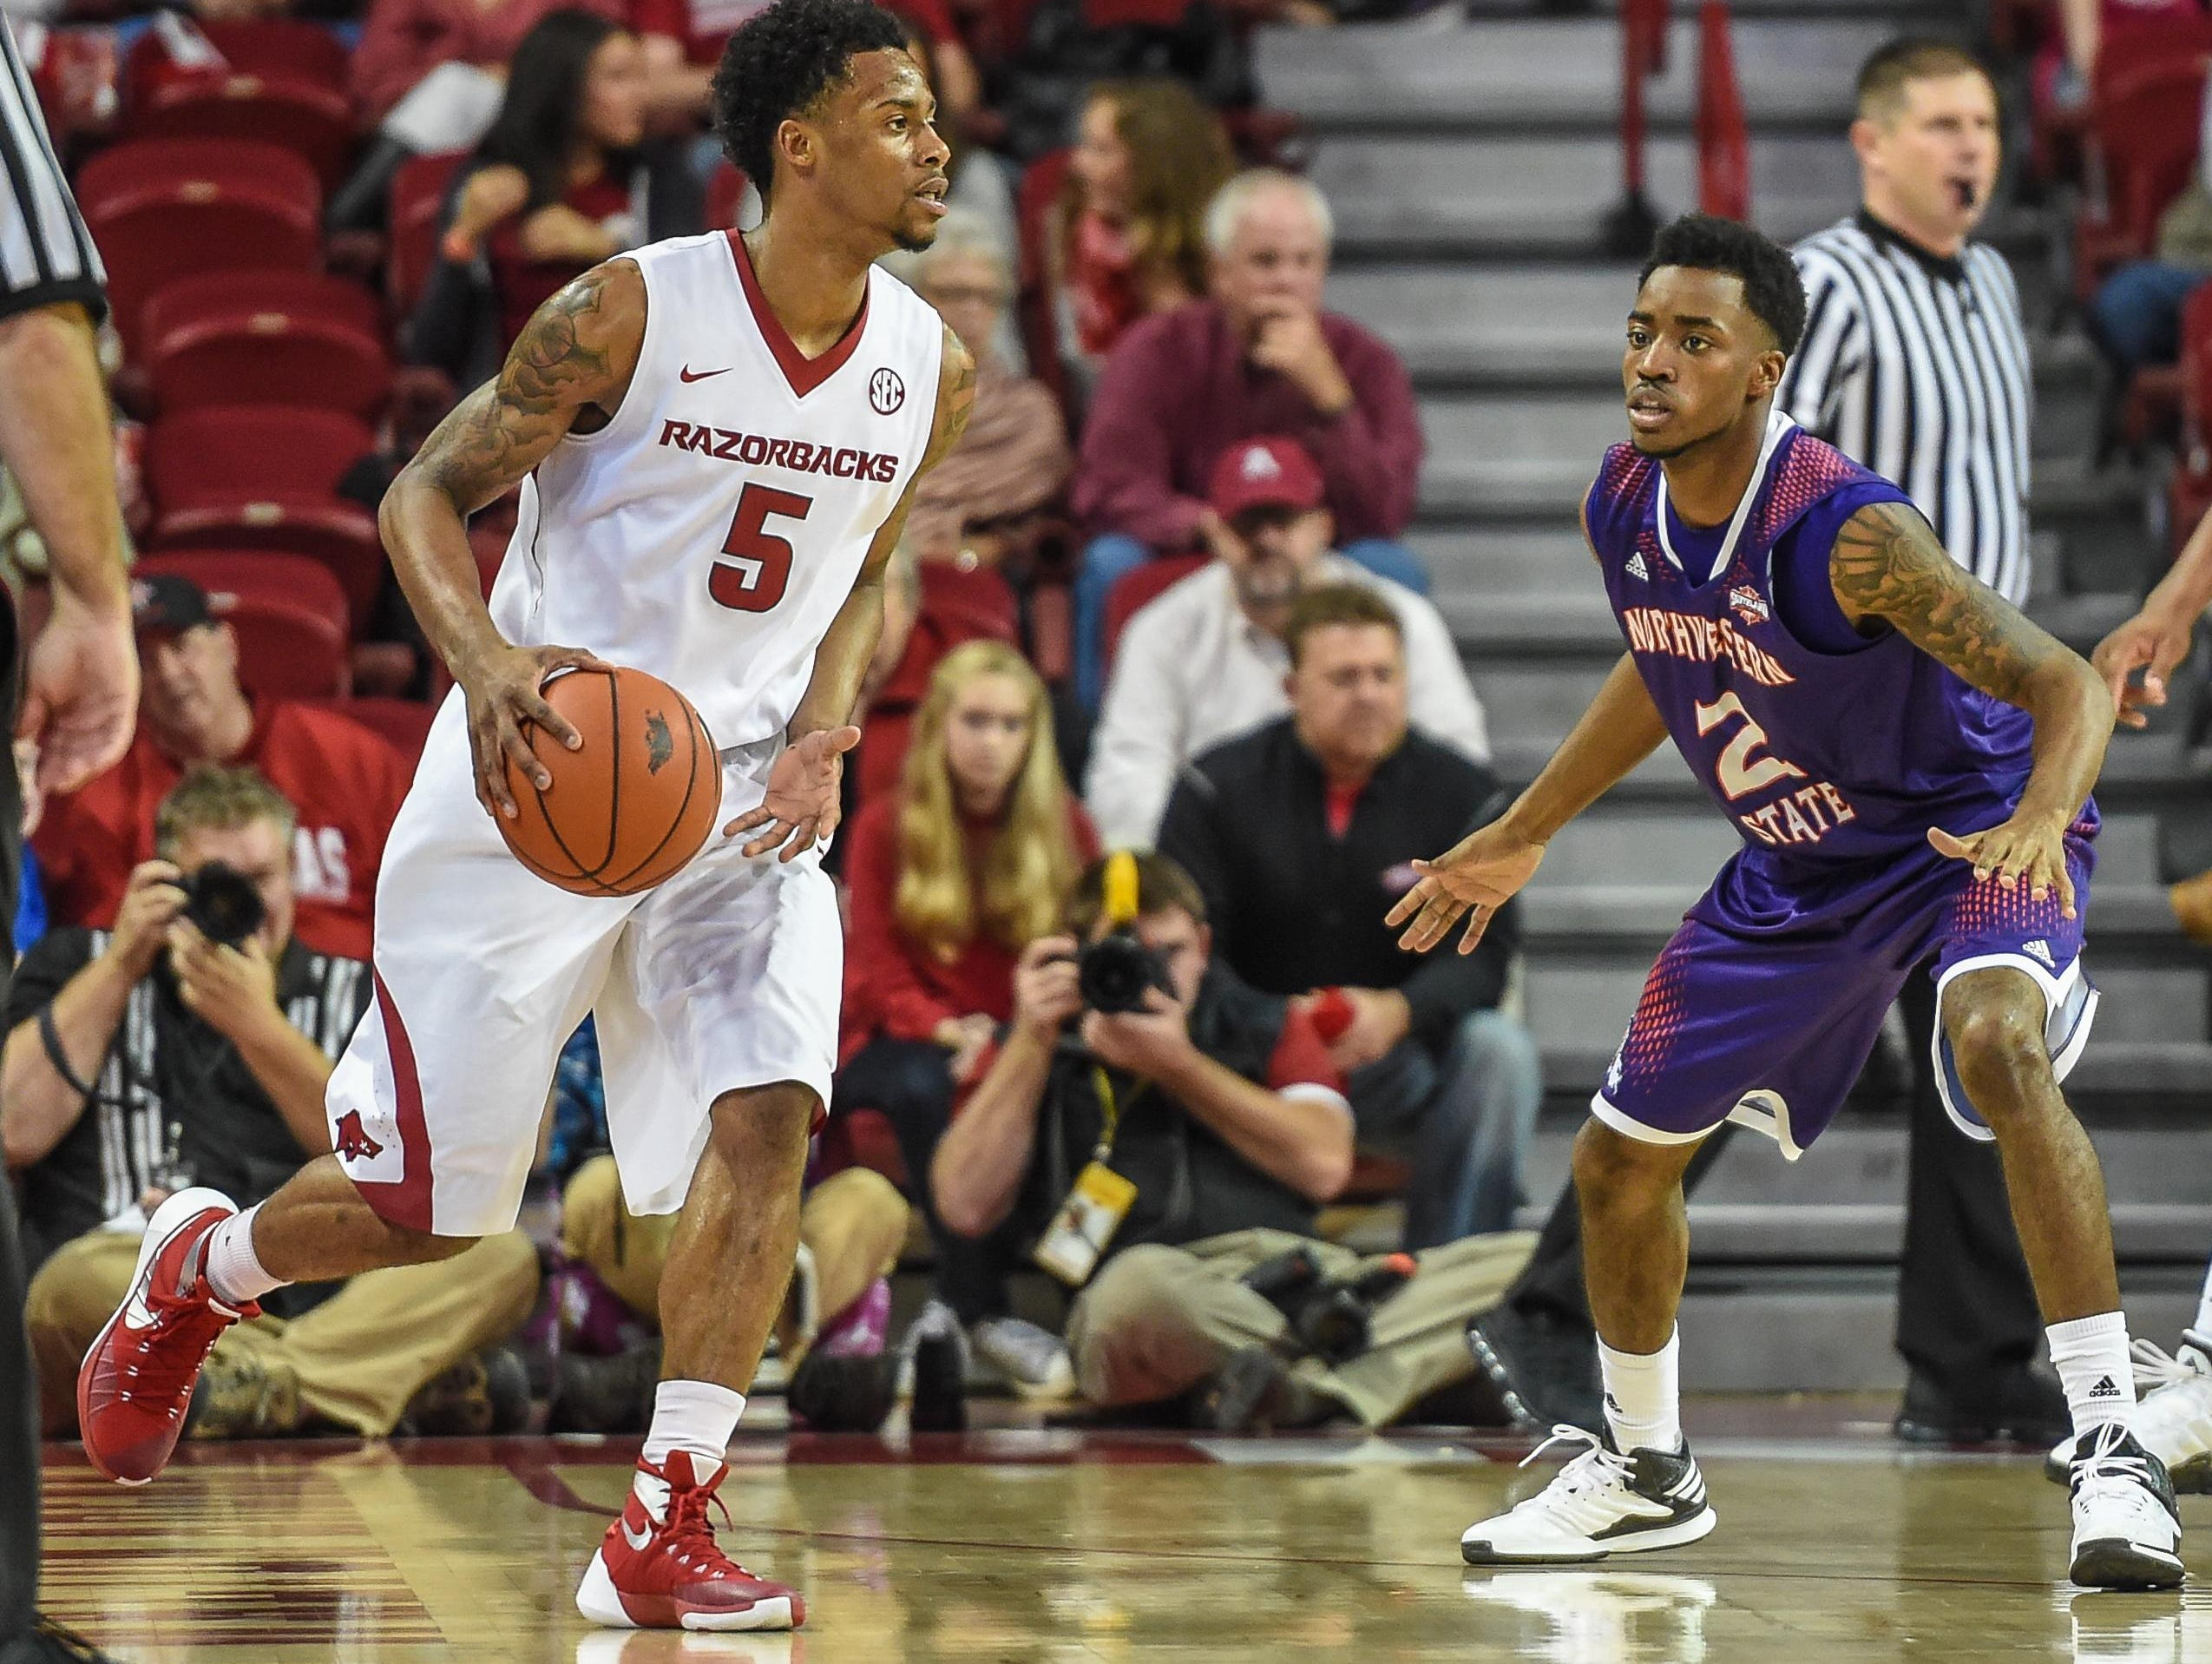 Arkansas guard Anthlon Bell (5) takes the ball downcourt during a game between the Razorbacks and Northwestern State on Tuesday.